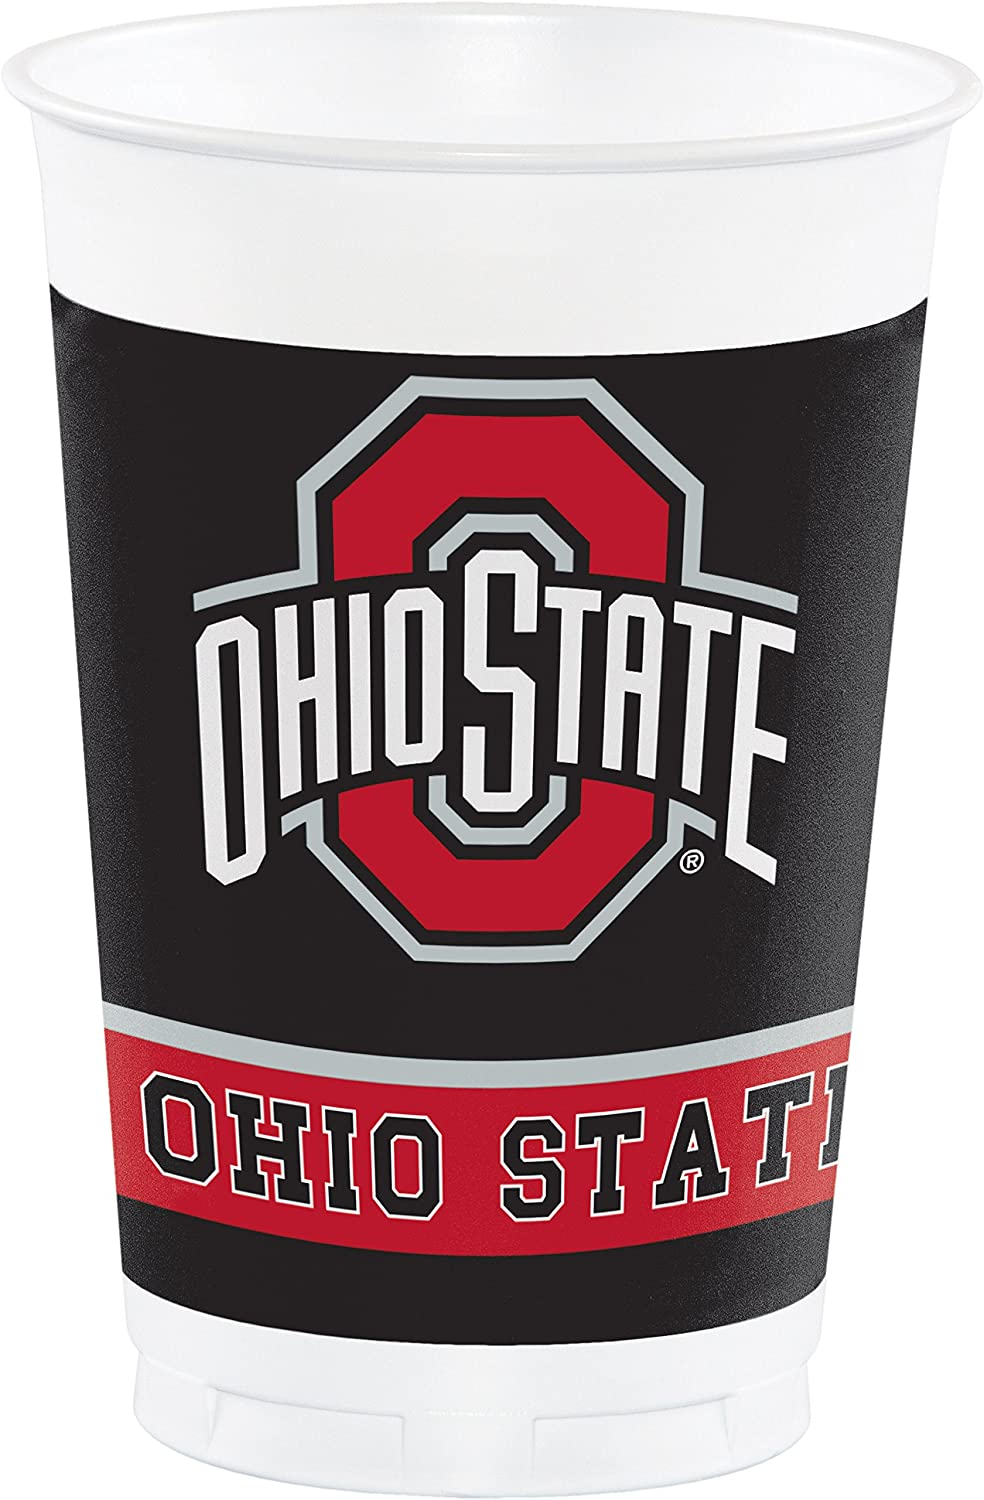 Ohio State University Plastic Cups, 24 ct